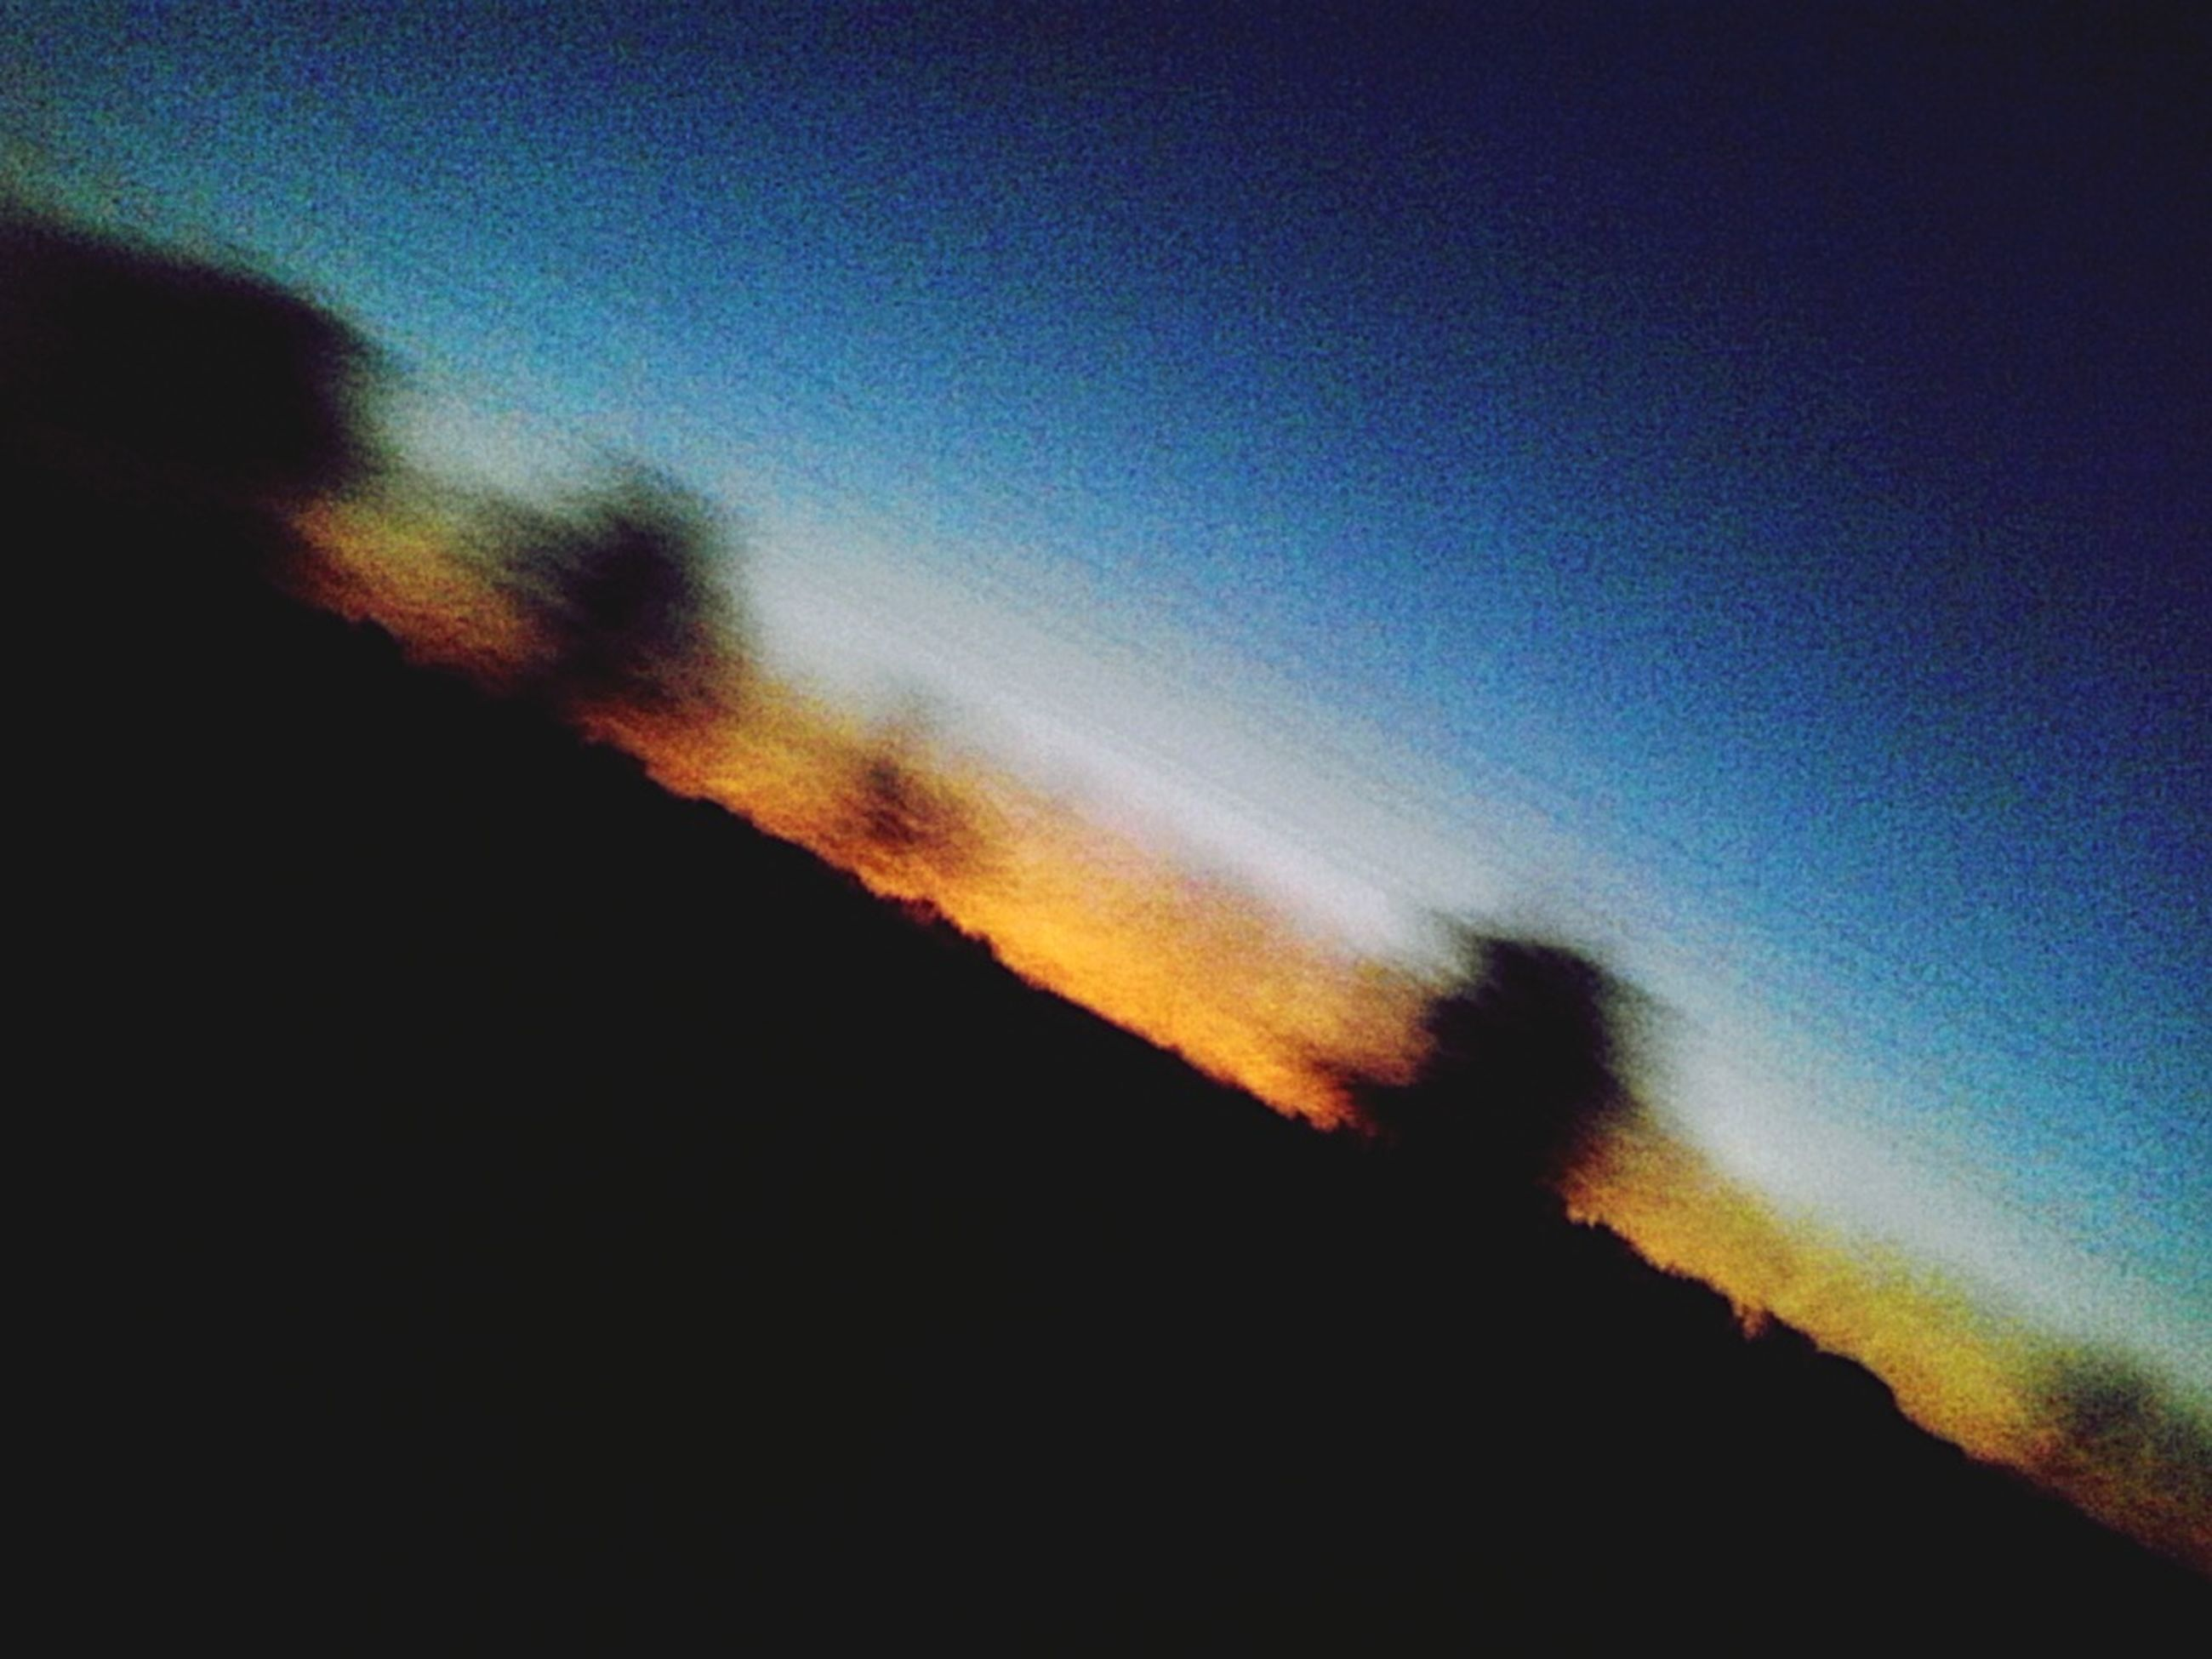 silhouette, sunset, sky, scenics, beauty in nature, tranquility, tranquil scene, low angle view, nature, dusk, copy space, cloud - sky, dark, blue, idyllic, outdoors, outline, cloud, no people, dramatic sky